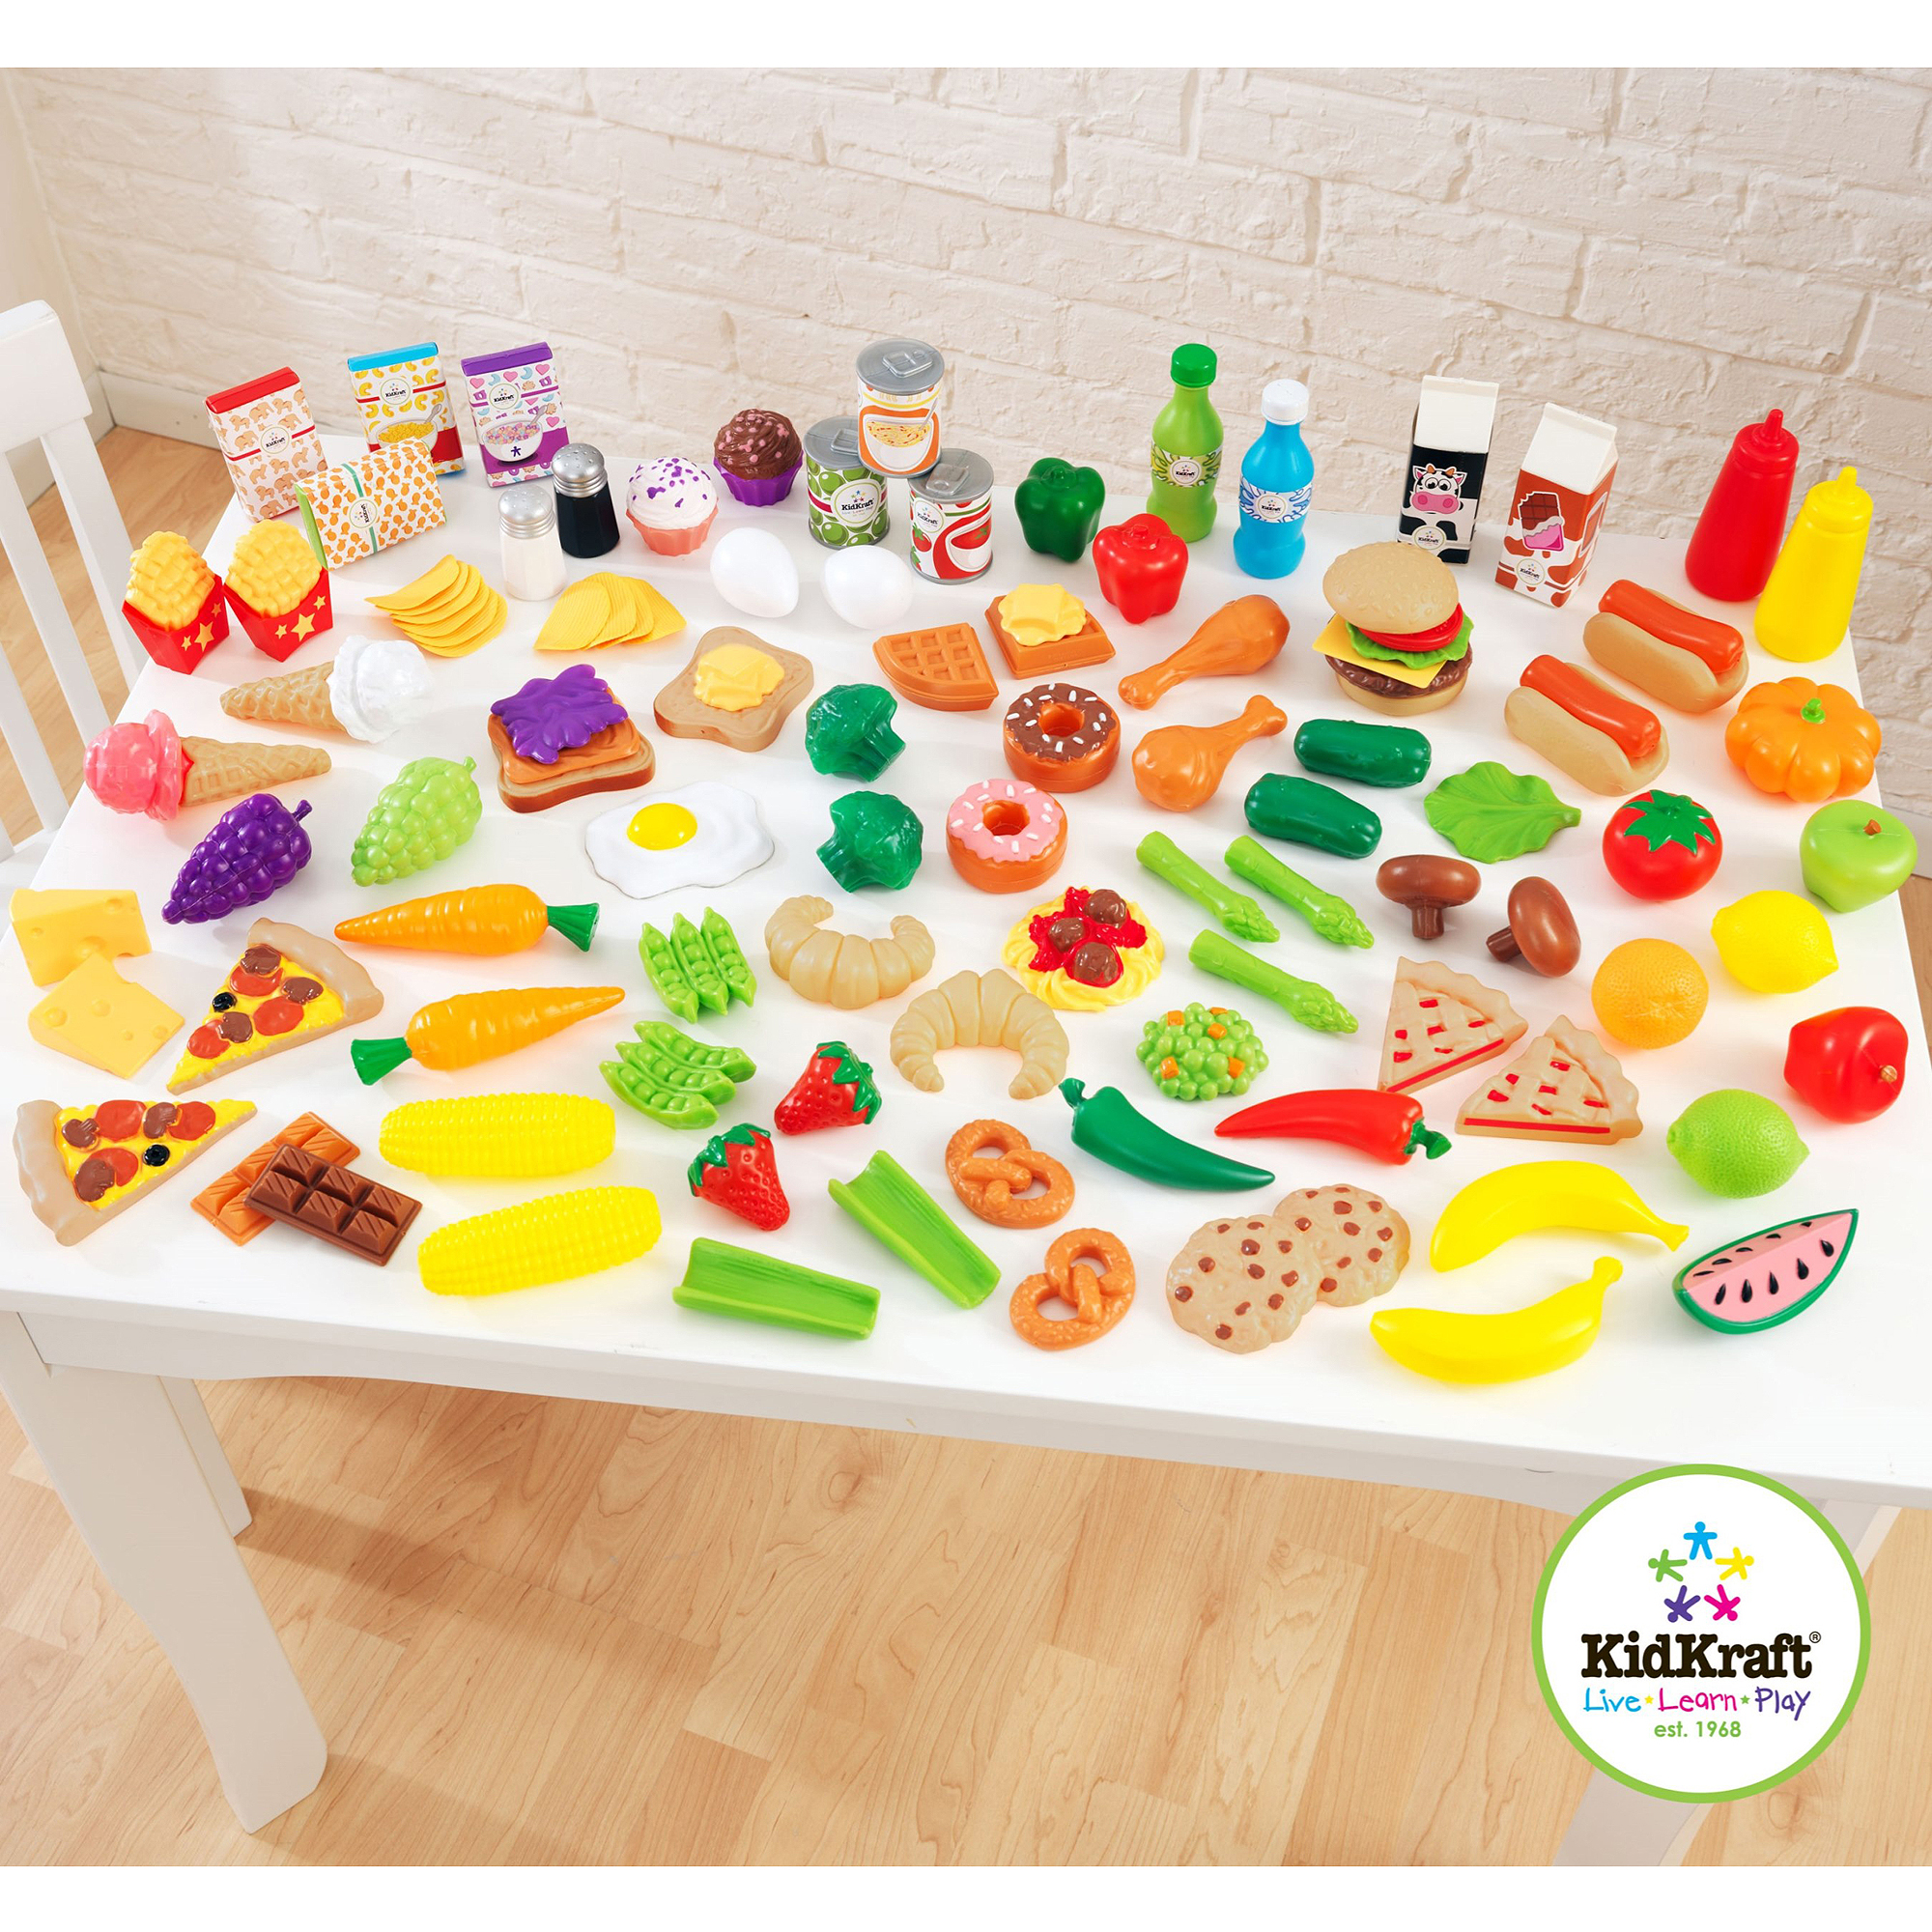 KidKraft Tasty Treats Play food Set, 115 Pieces